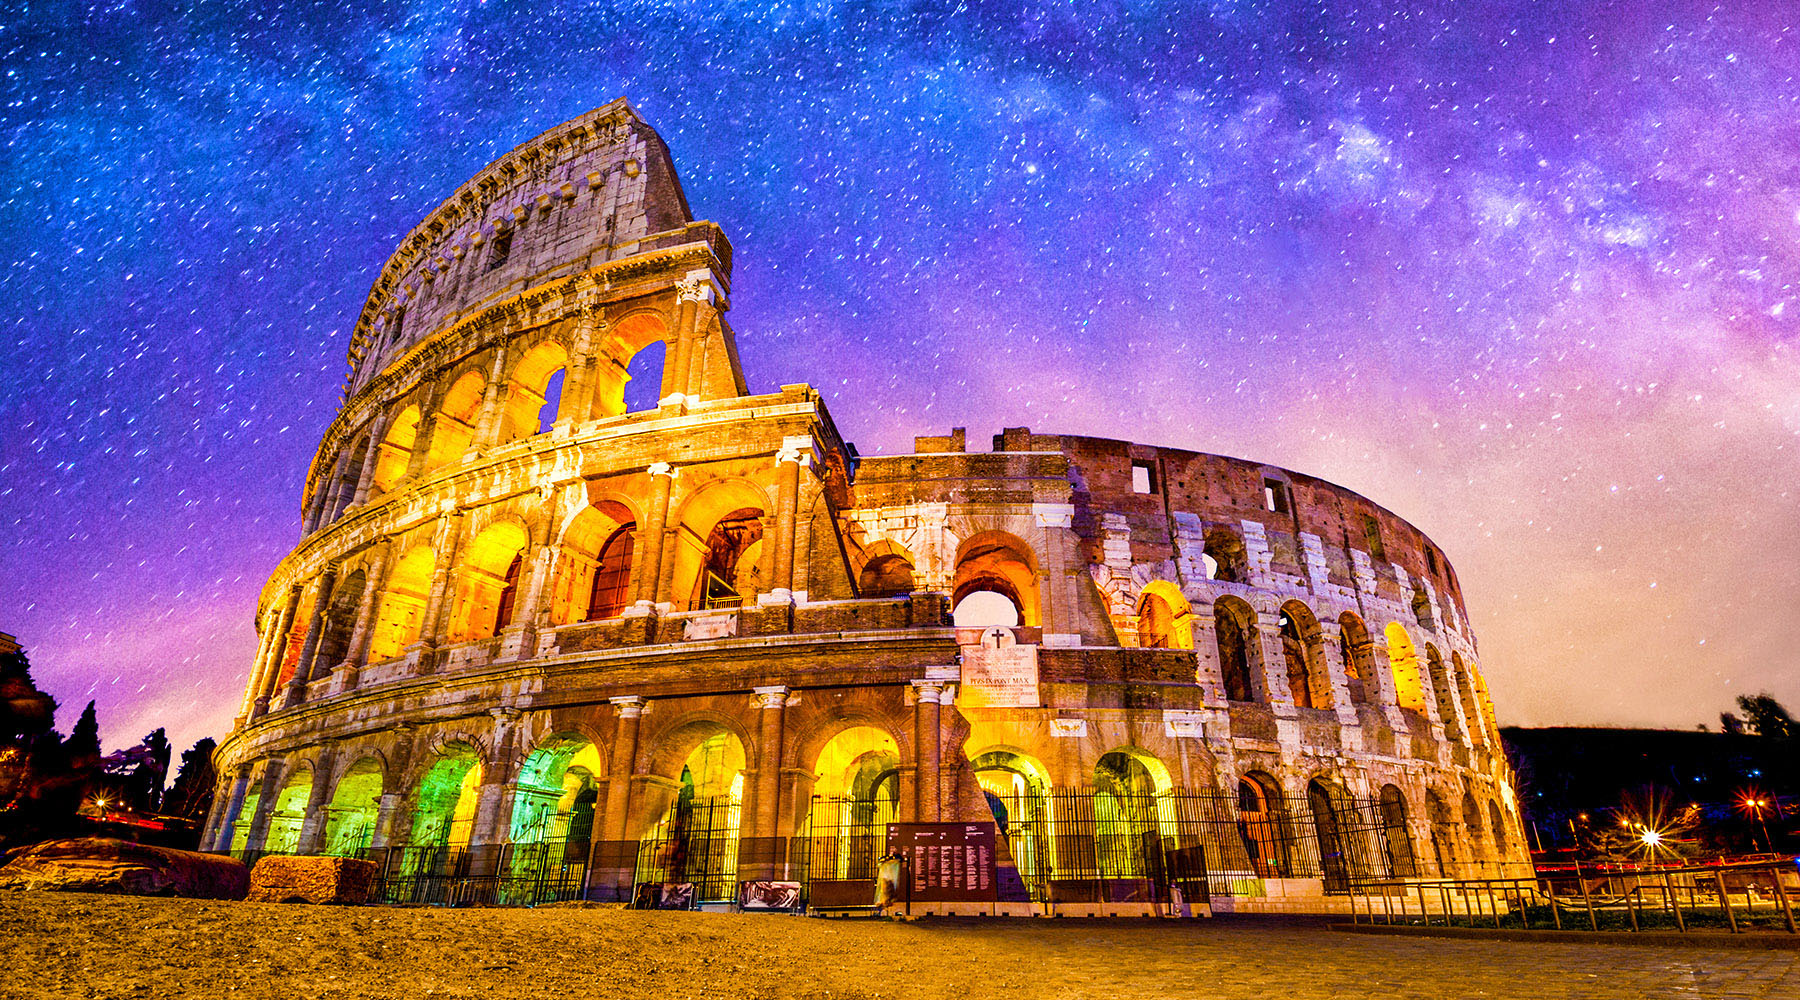 7-Night Italy Intensive Voyage & 3-Night Pre Rome Stay